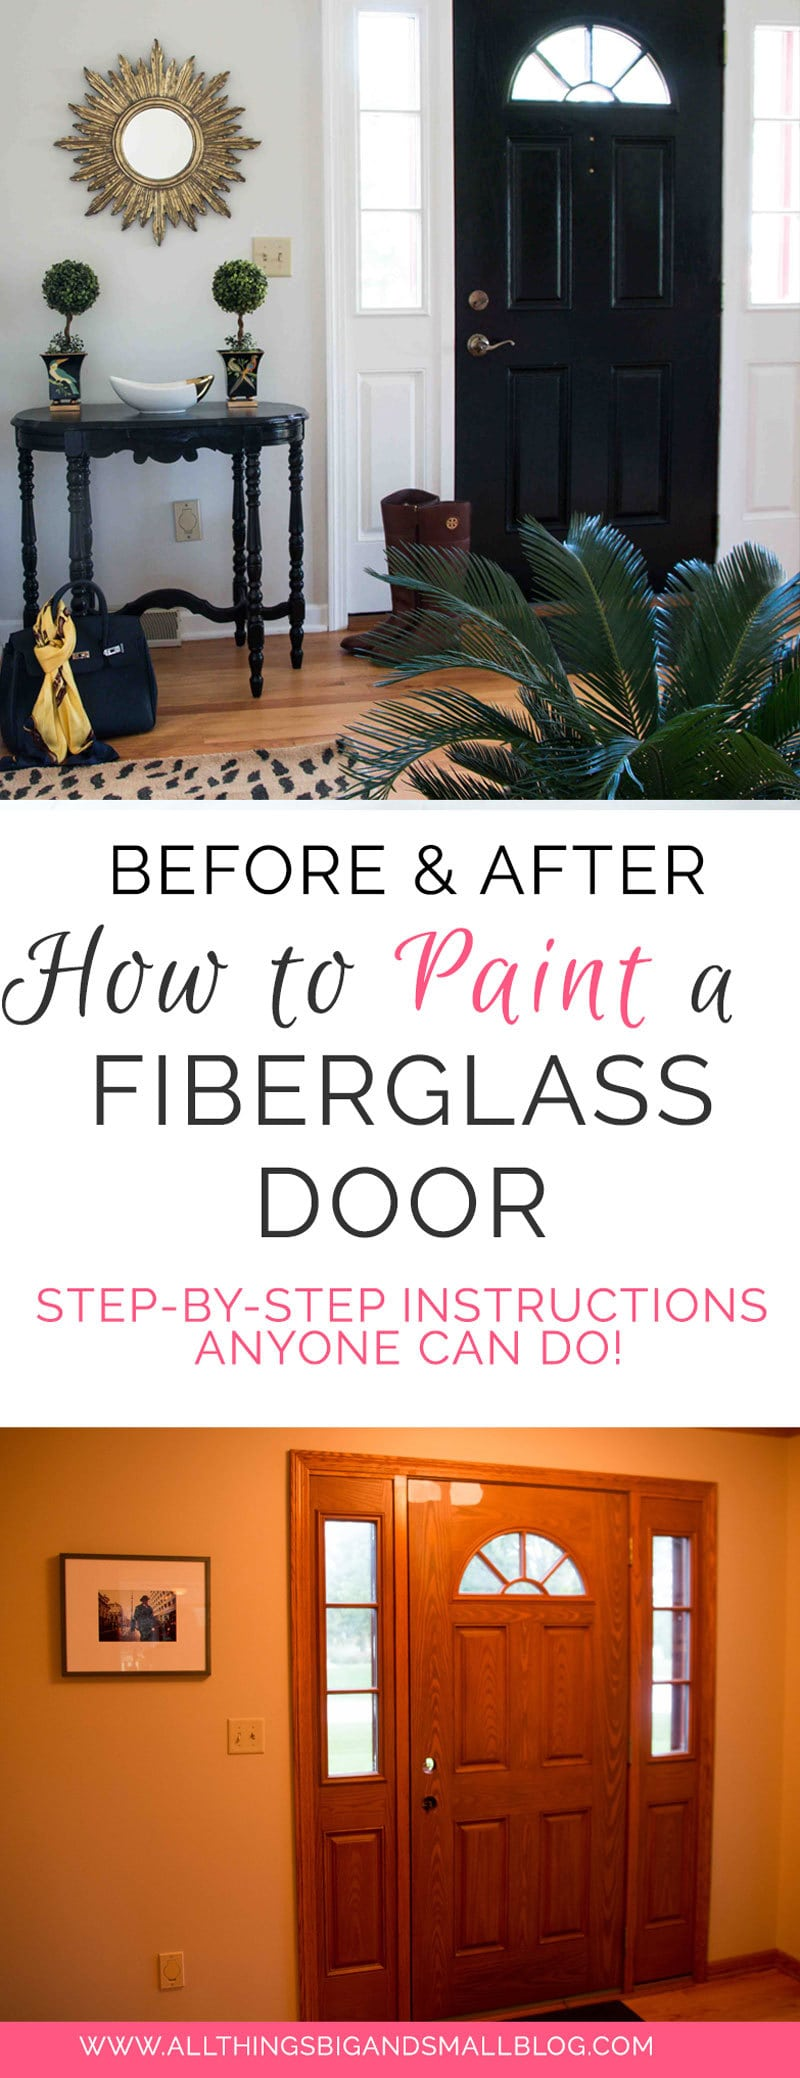 How To Paint Fiberglass Door: a step-by-step tutorial on how to paint front door from ALL THINGS BIG AND SMALL BLOG